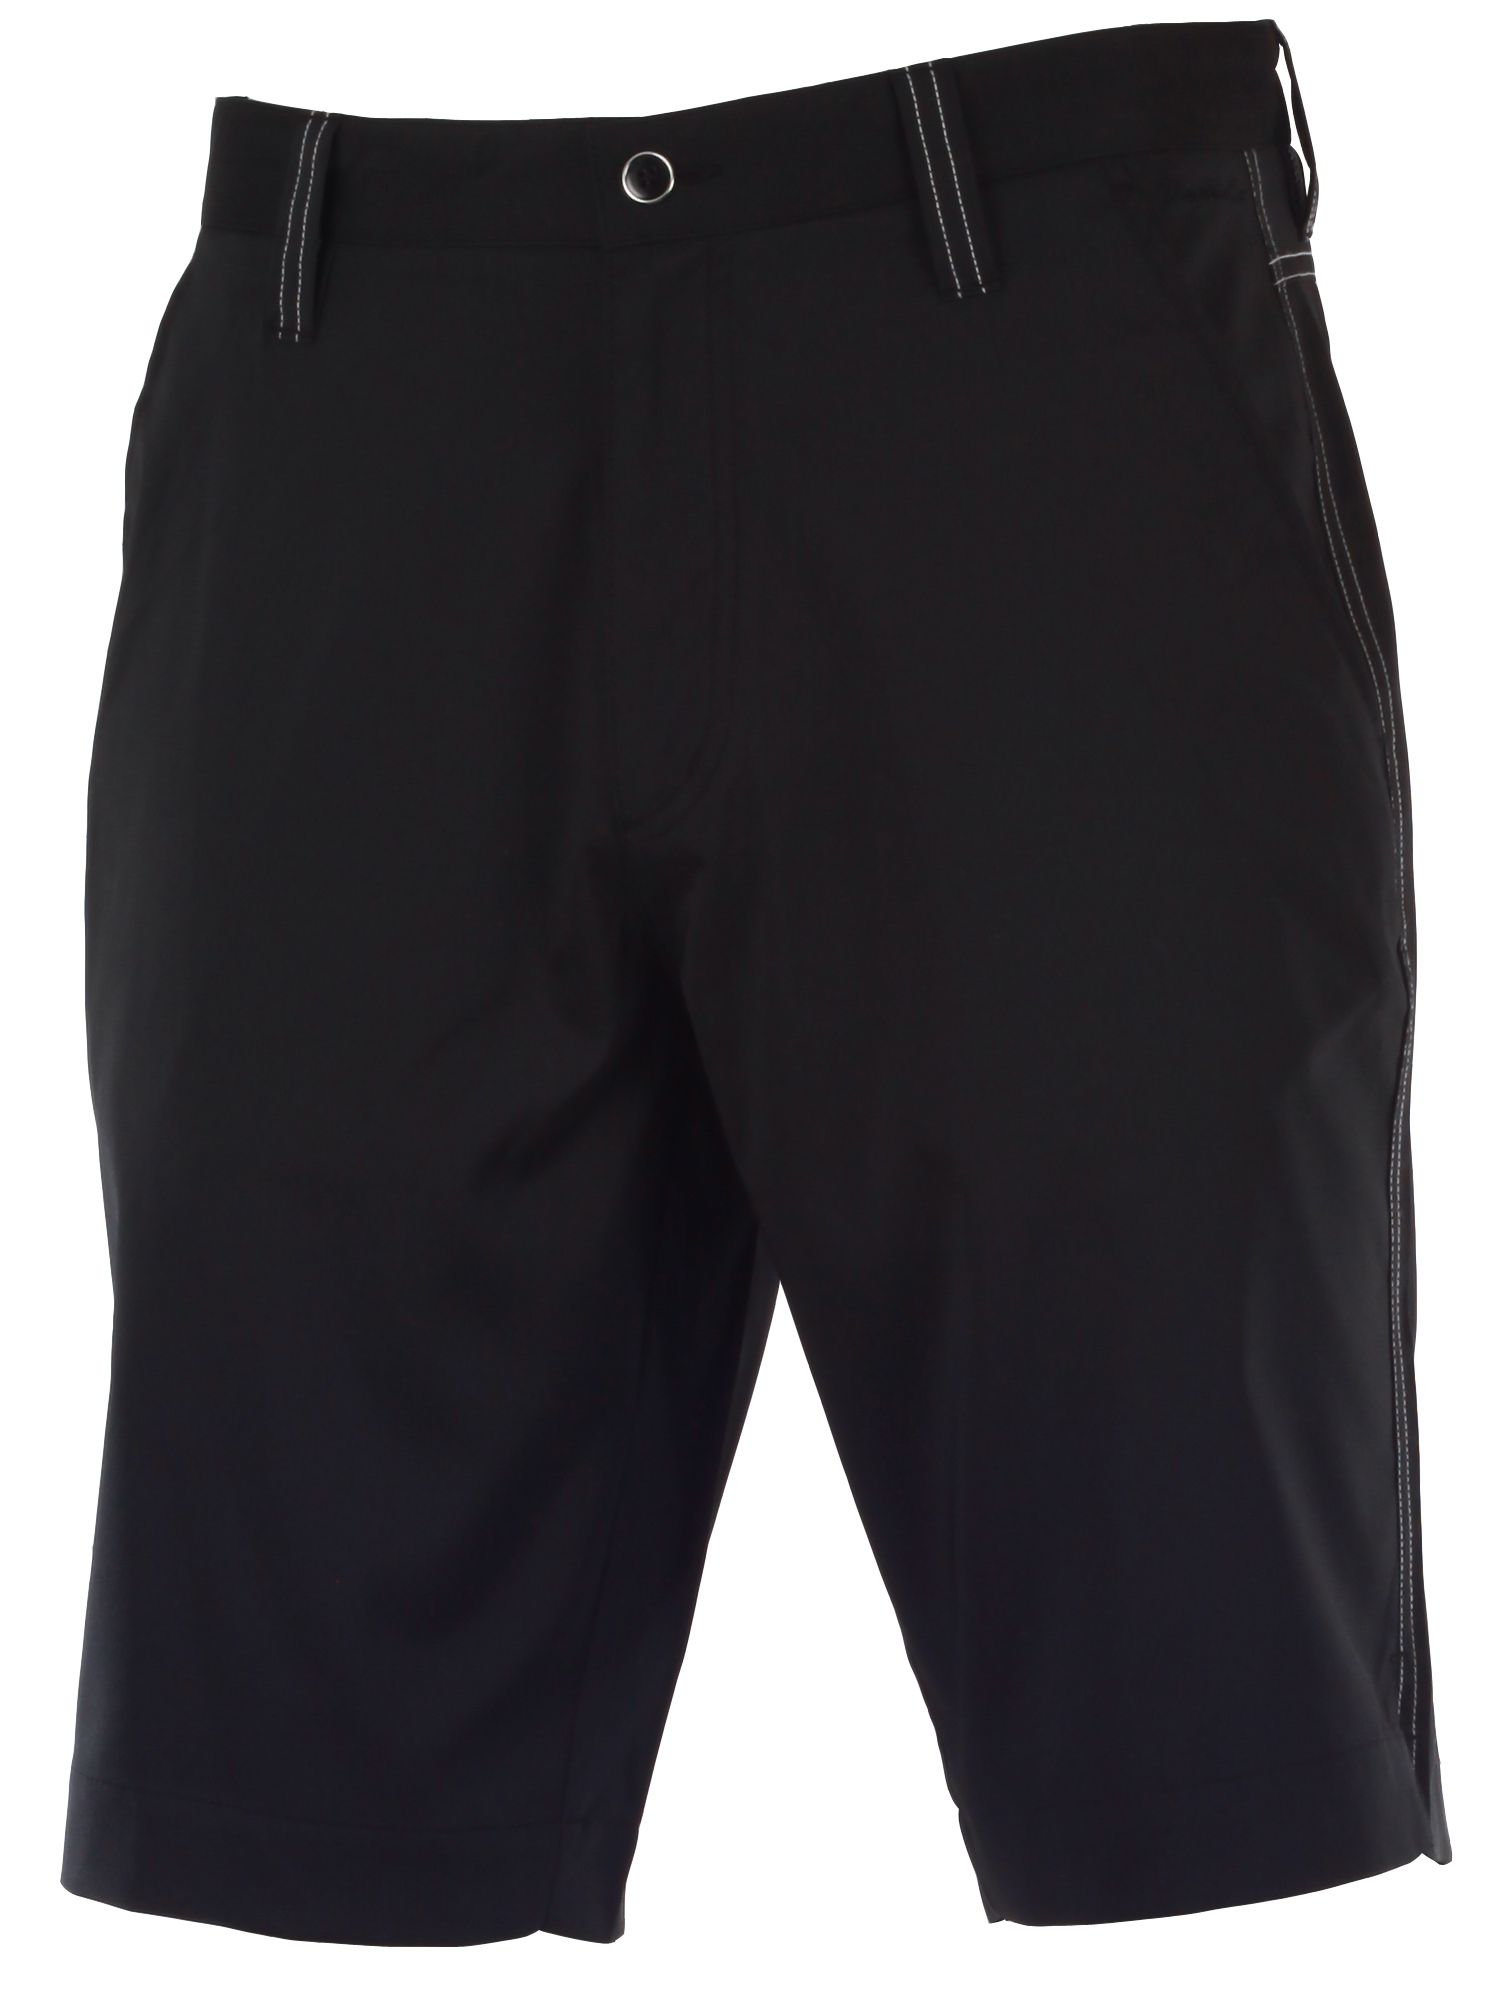 Dwyers and Co Men's Dwyers and Co Micro Tech 2.0 shorts, Black